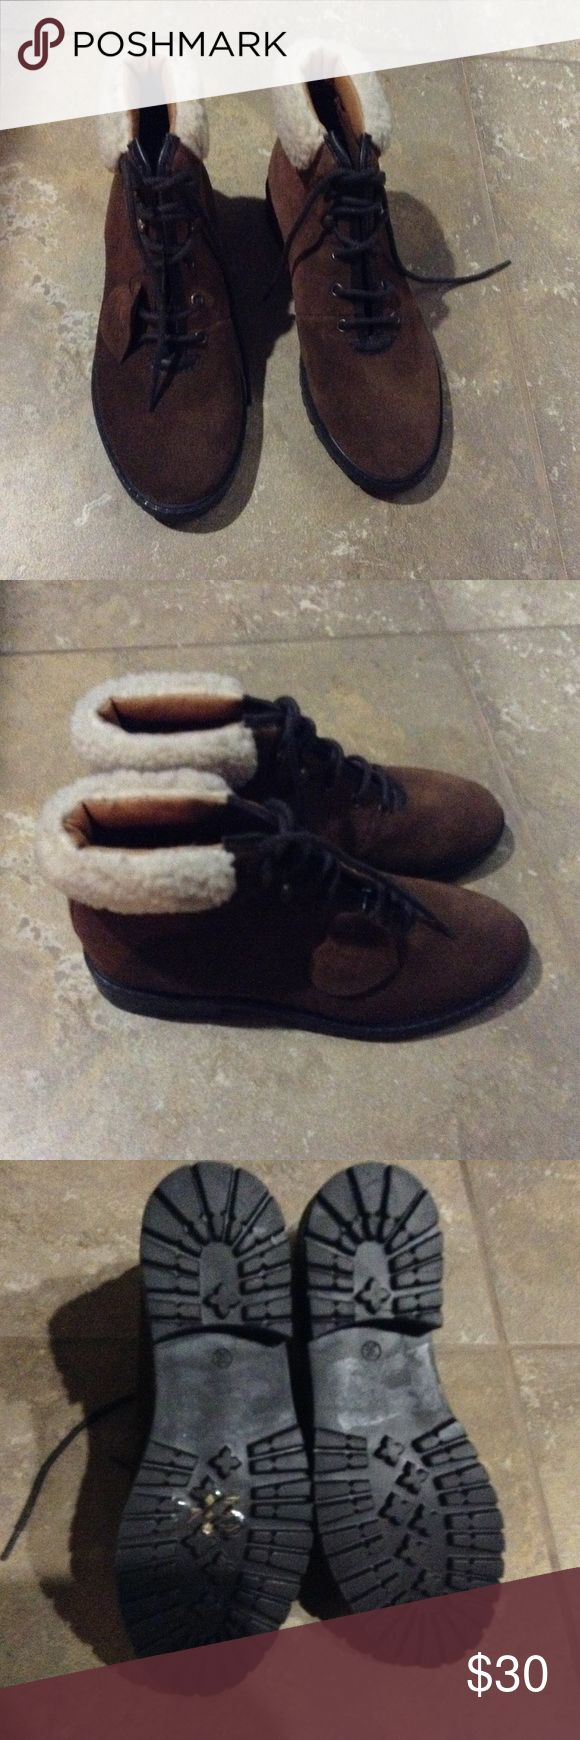 TOPSHOP BOOTS!!! TOPSHOP Booties. Not worn! Excellent condition!!! Topshop Shoes Ankle Boots & Booties